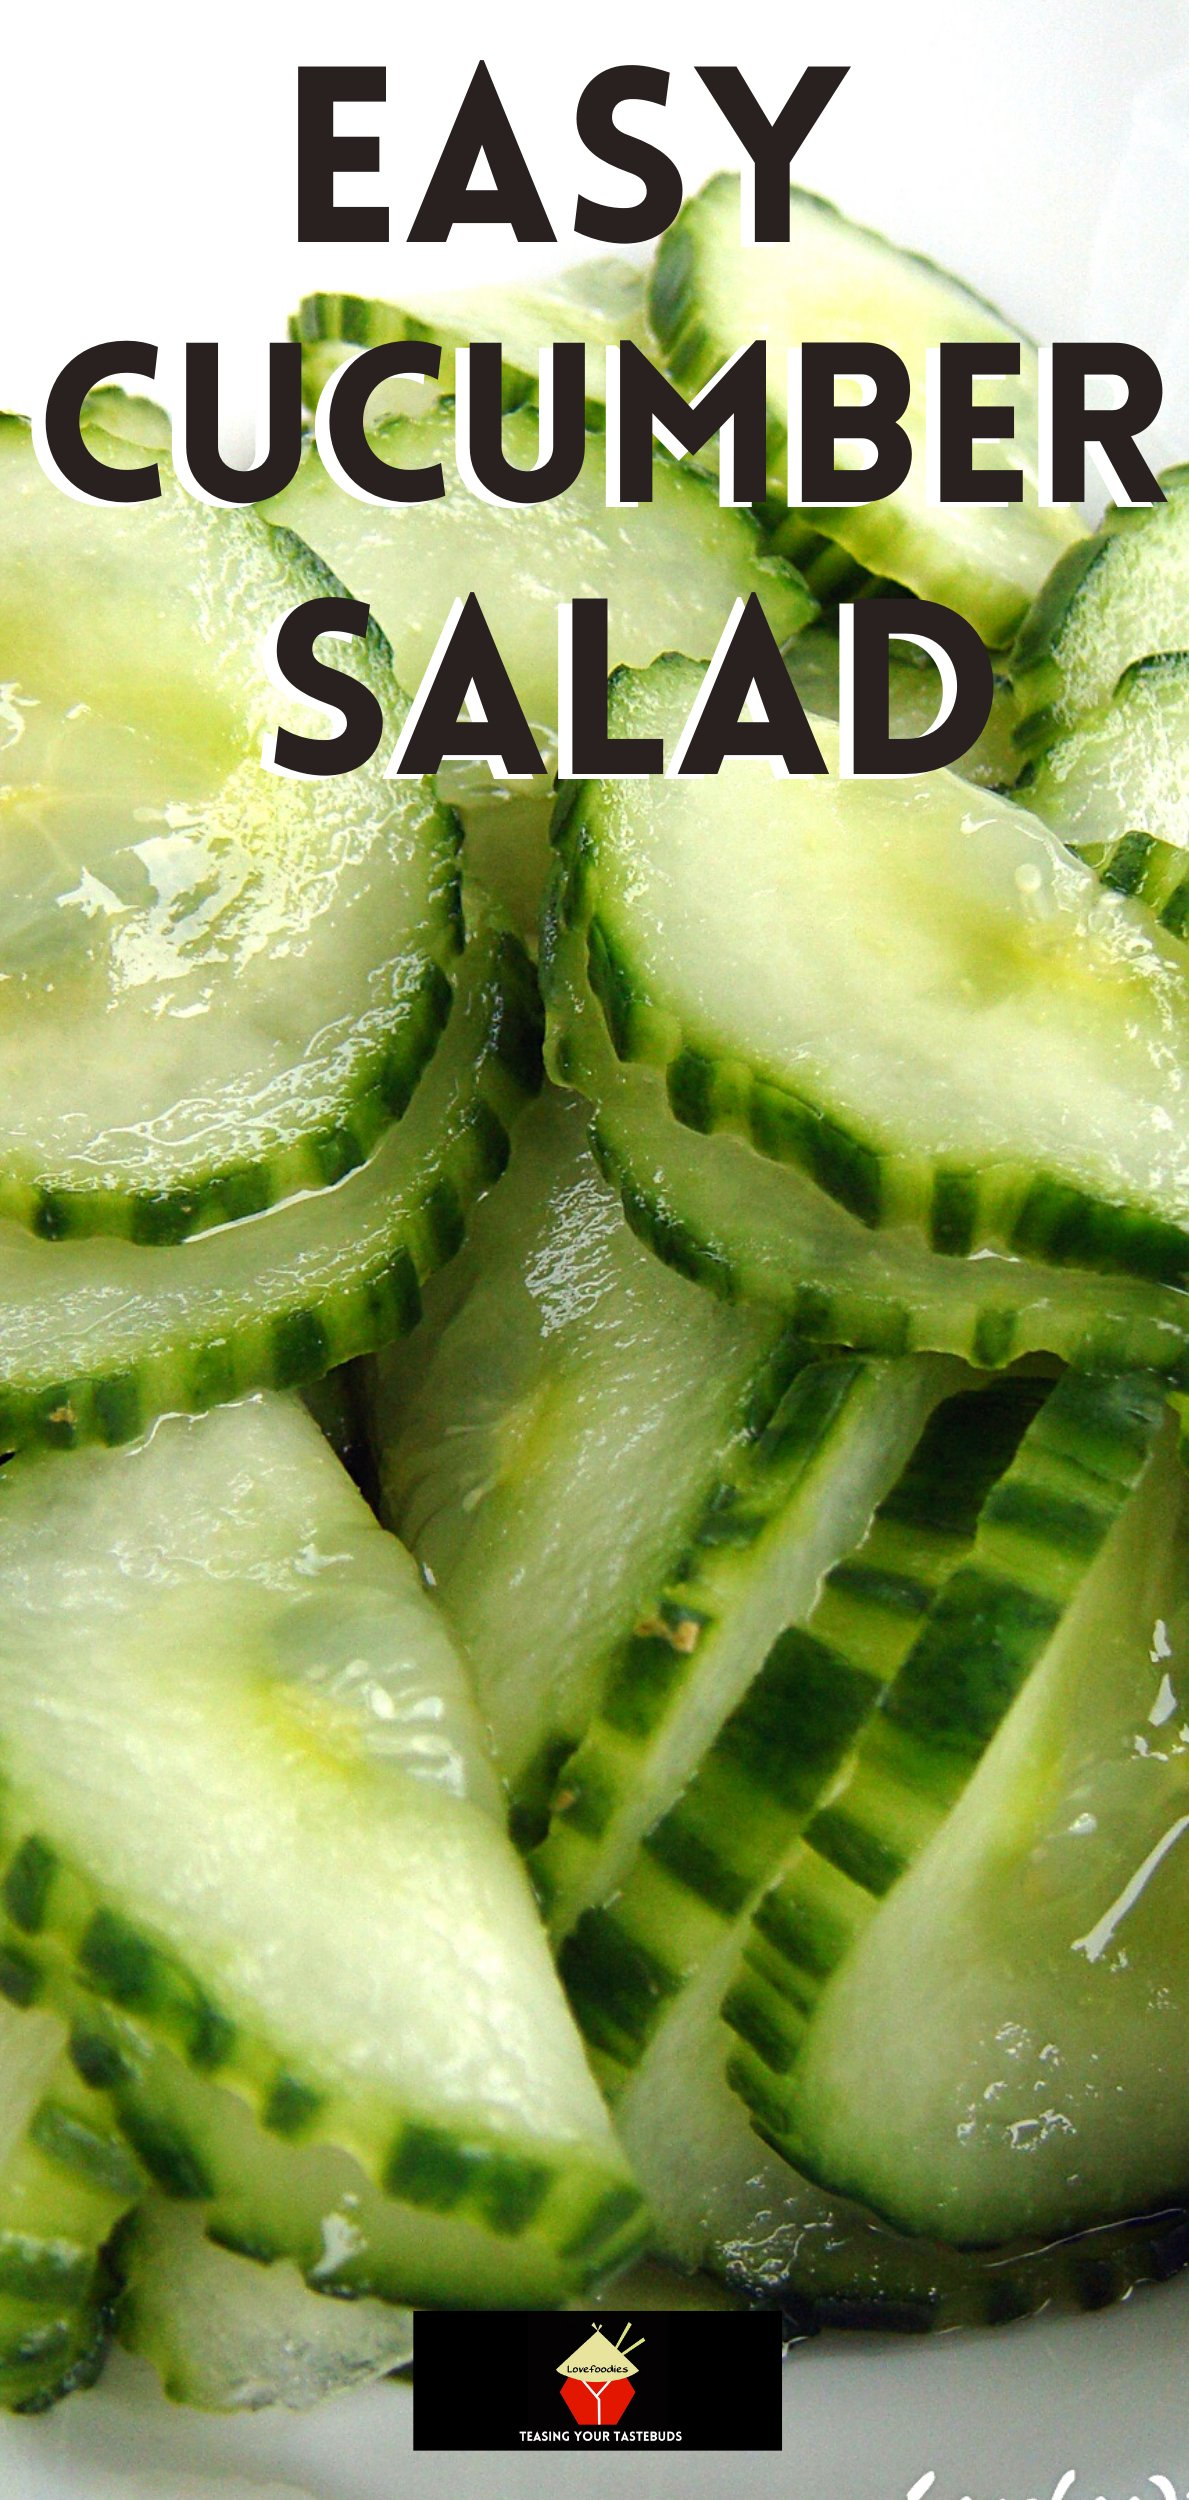 The Best Easy Cucumber Salad. Great Flavors and always a hit! Very refreshing taste and crunch with a sweet and sour pickled juice